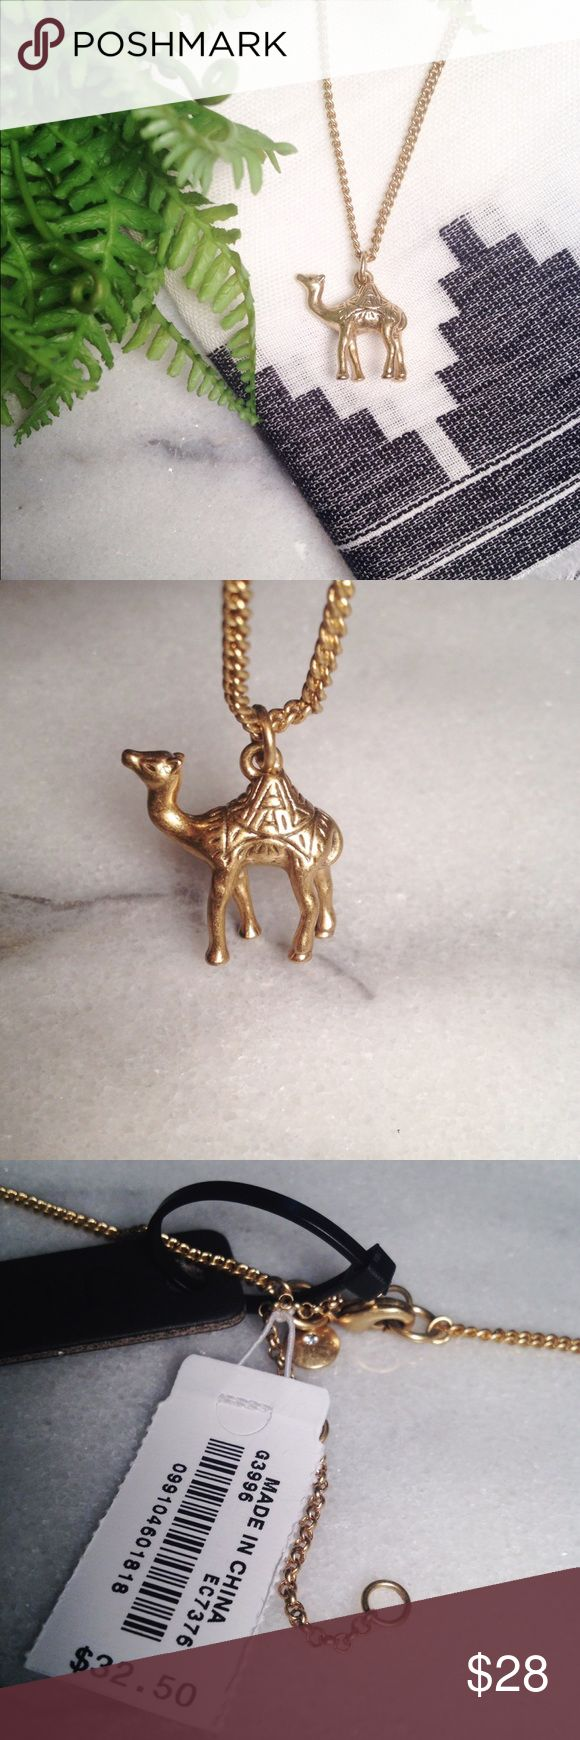 J. Crew Camel Pendant Necklace J. Crew Camel Pendant Necklace. Adorable pendant camel necklace! Length is roughly 30 inches with a 3 inch extension. Jewelry bag included and the camel is slightly bigger than a penny. A must have for a jewelry lover! J. Crew Jewelry Necklaces